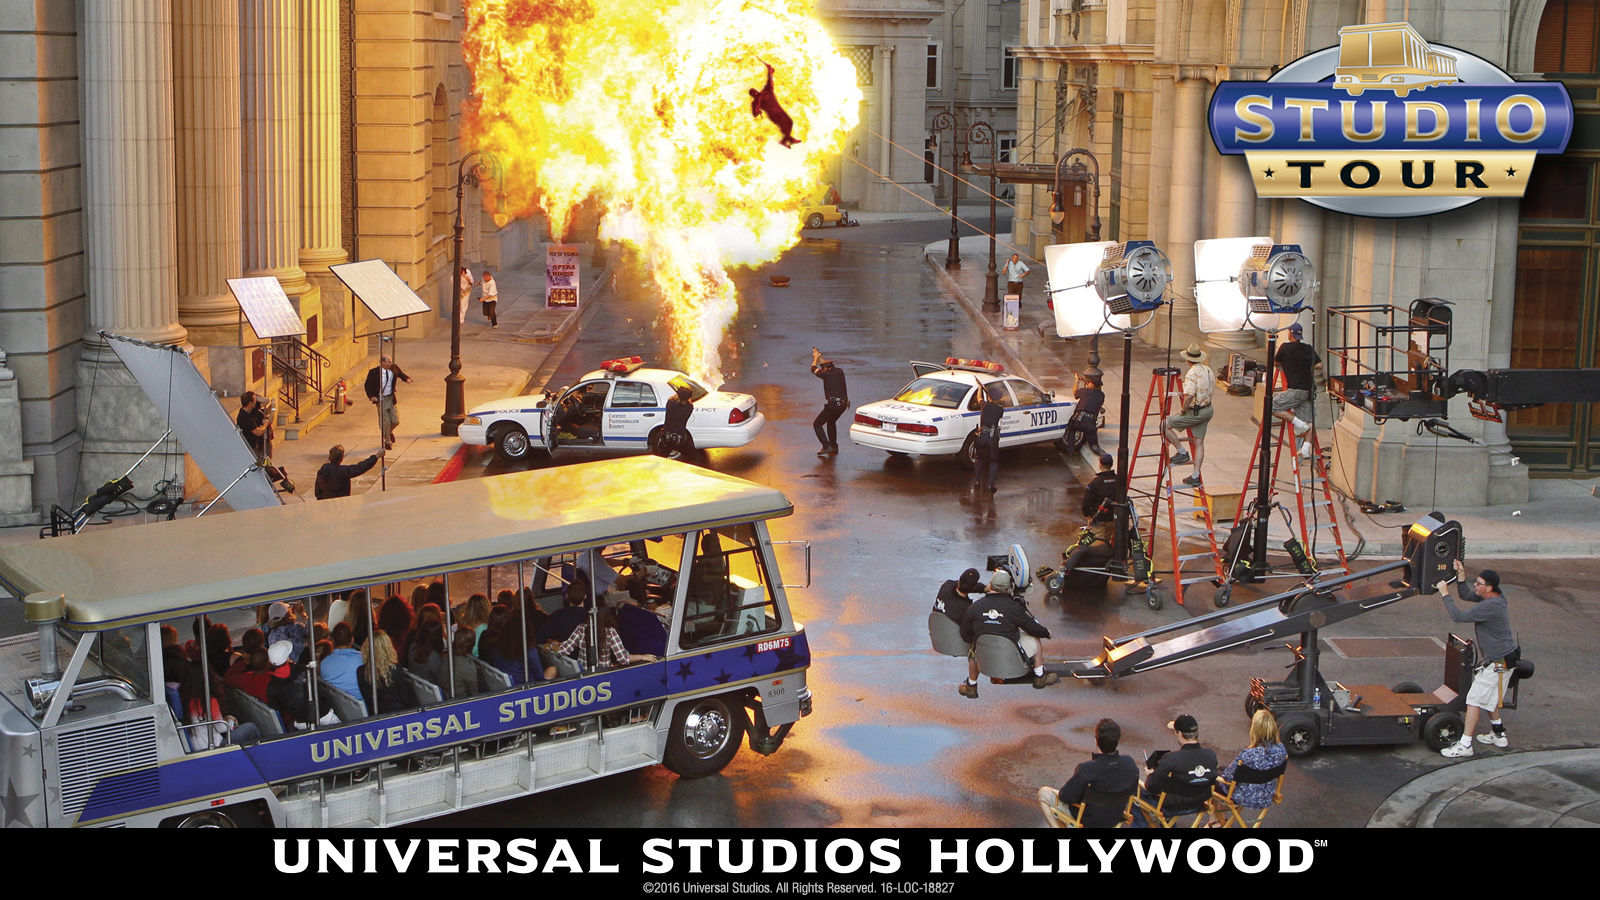 Universal Studios Hollywood Hotels - Universal Studios Hollywood Tour